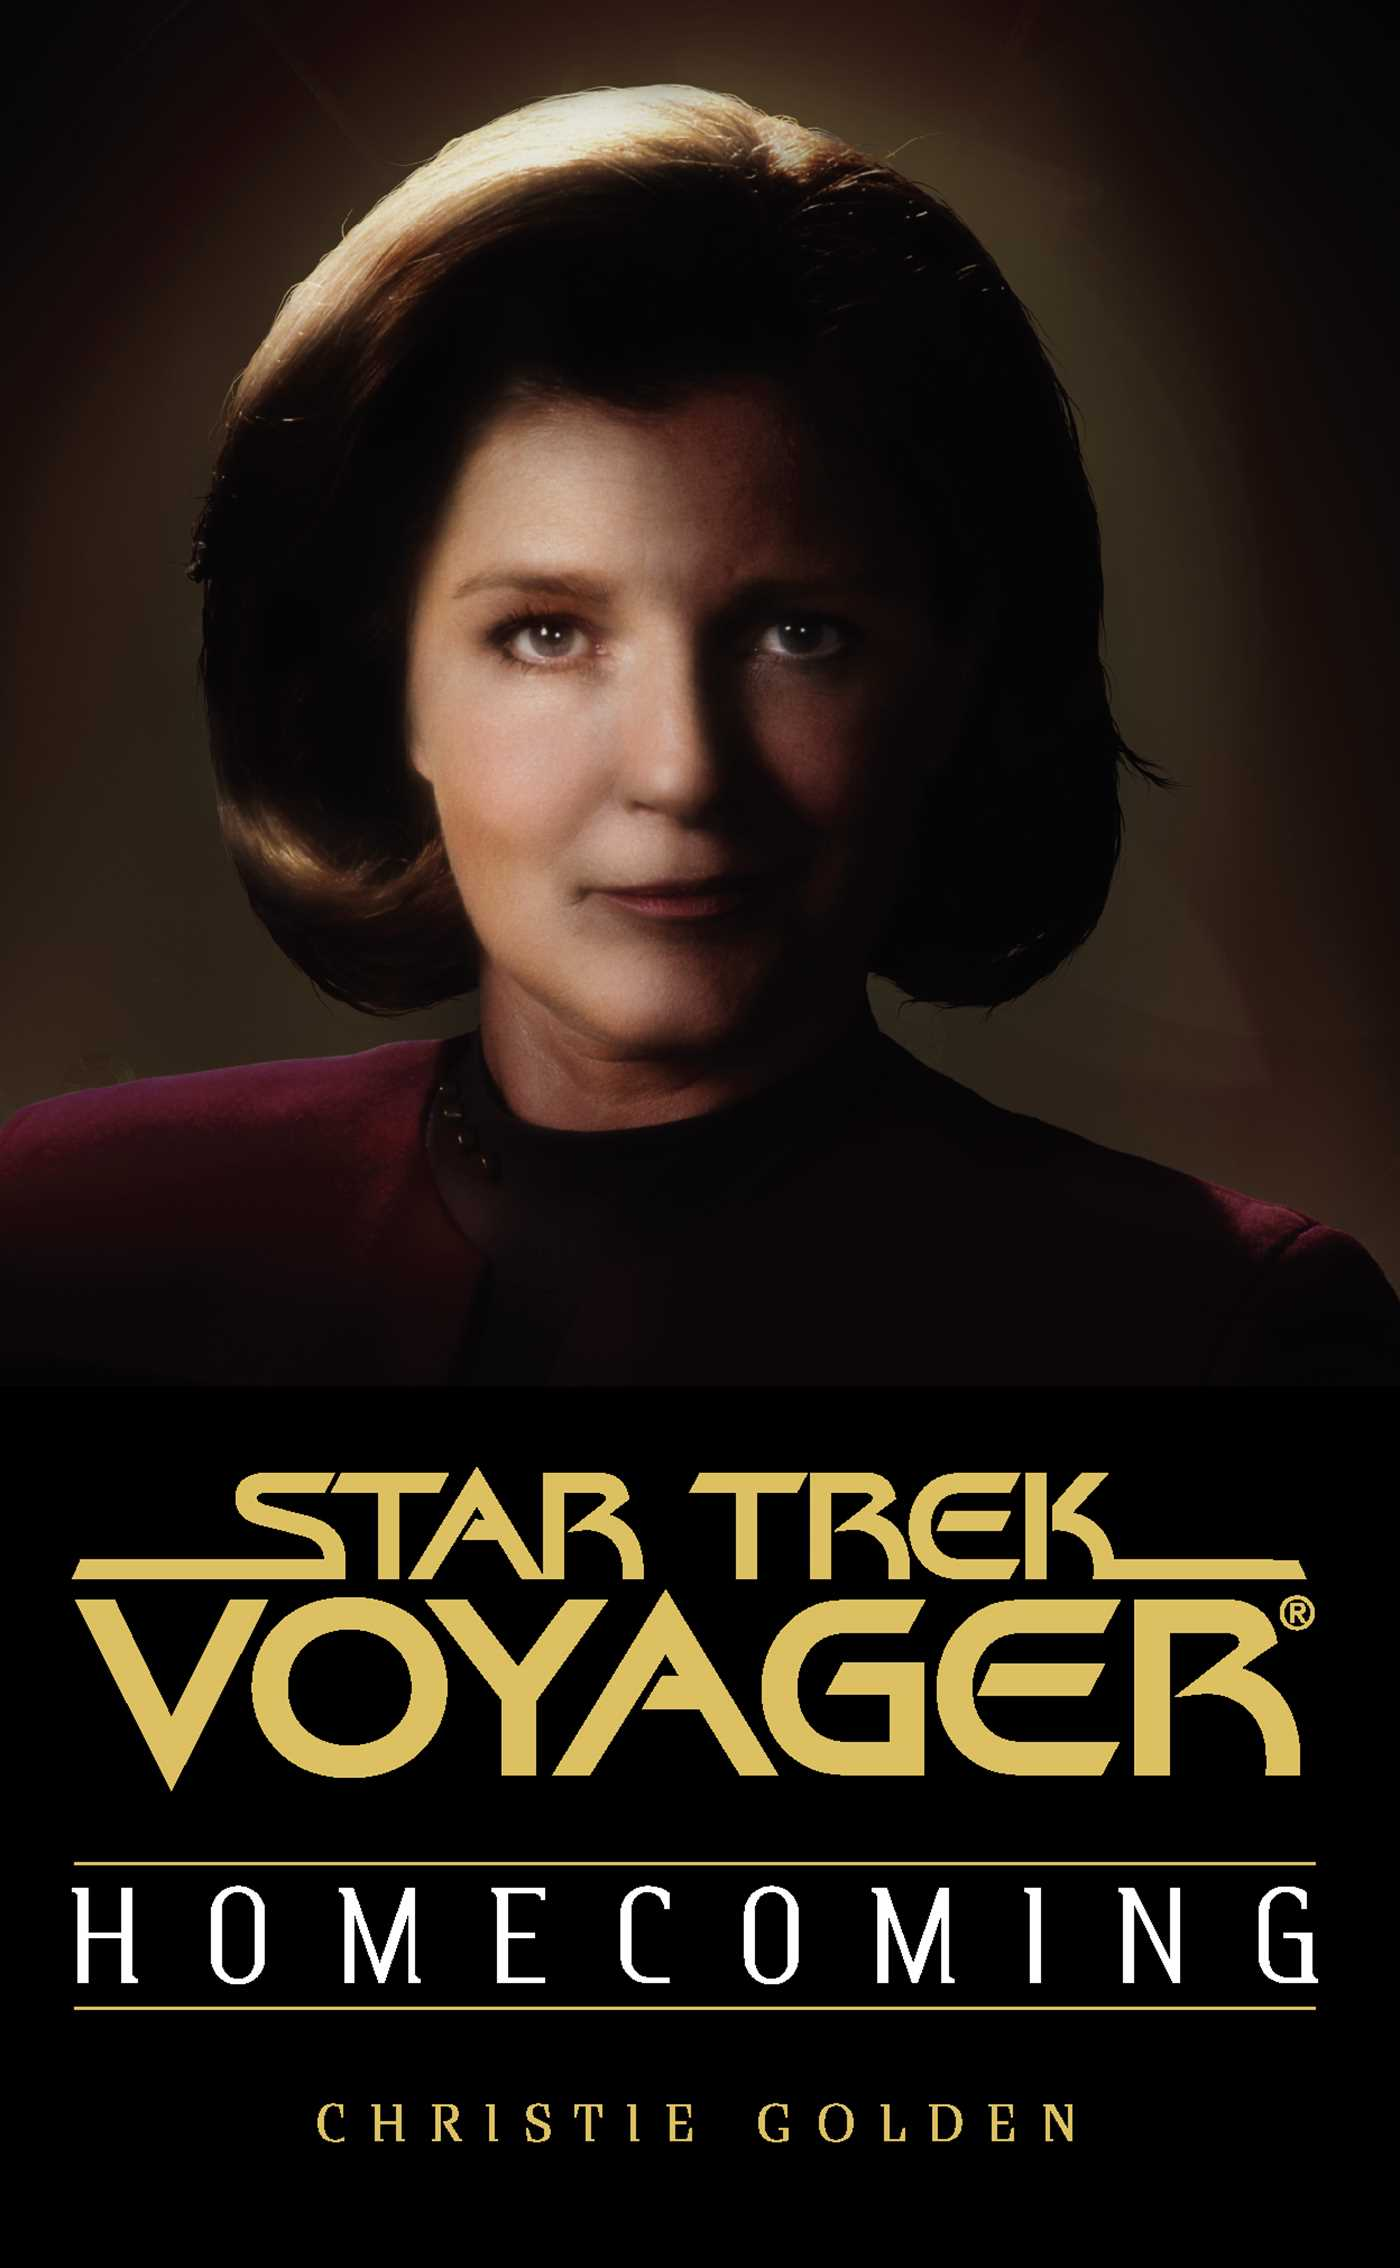 Star trek voyager homecoming 9780743475631 hr